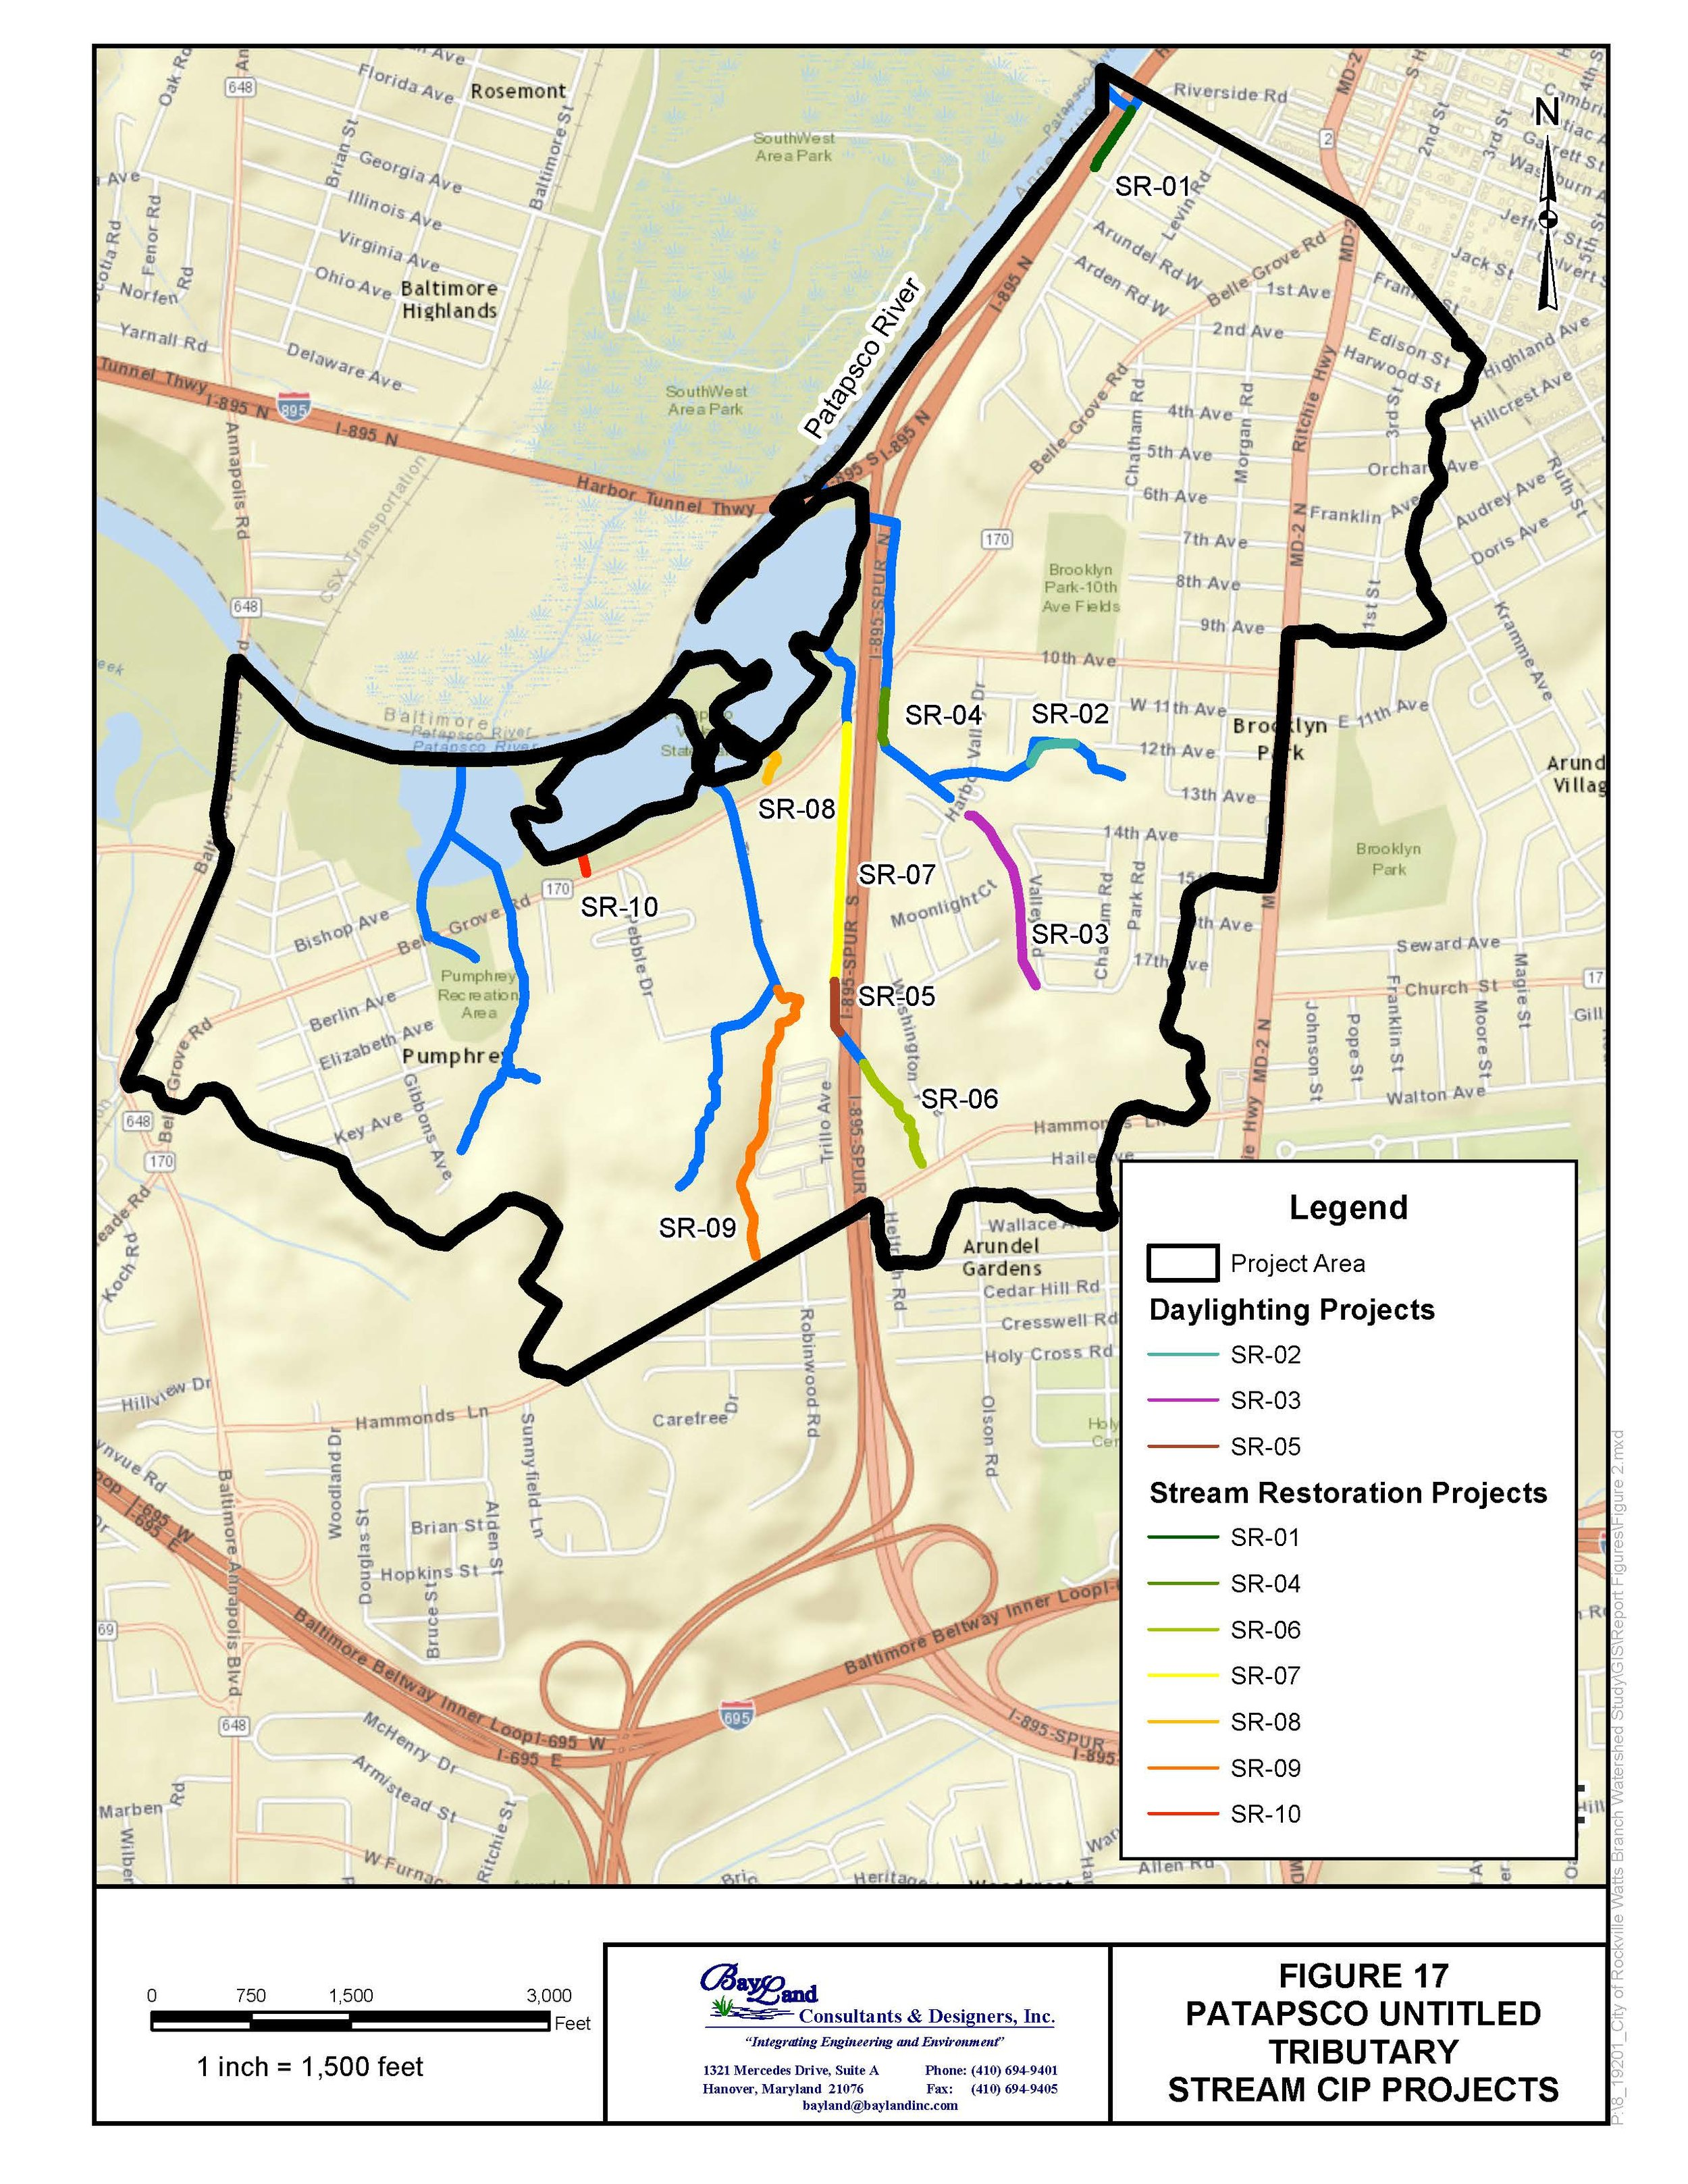 Patapsco Untitled Tributary Watershed BMP Feasibility Study